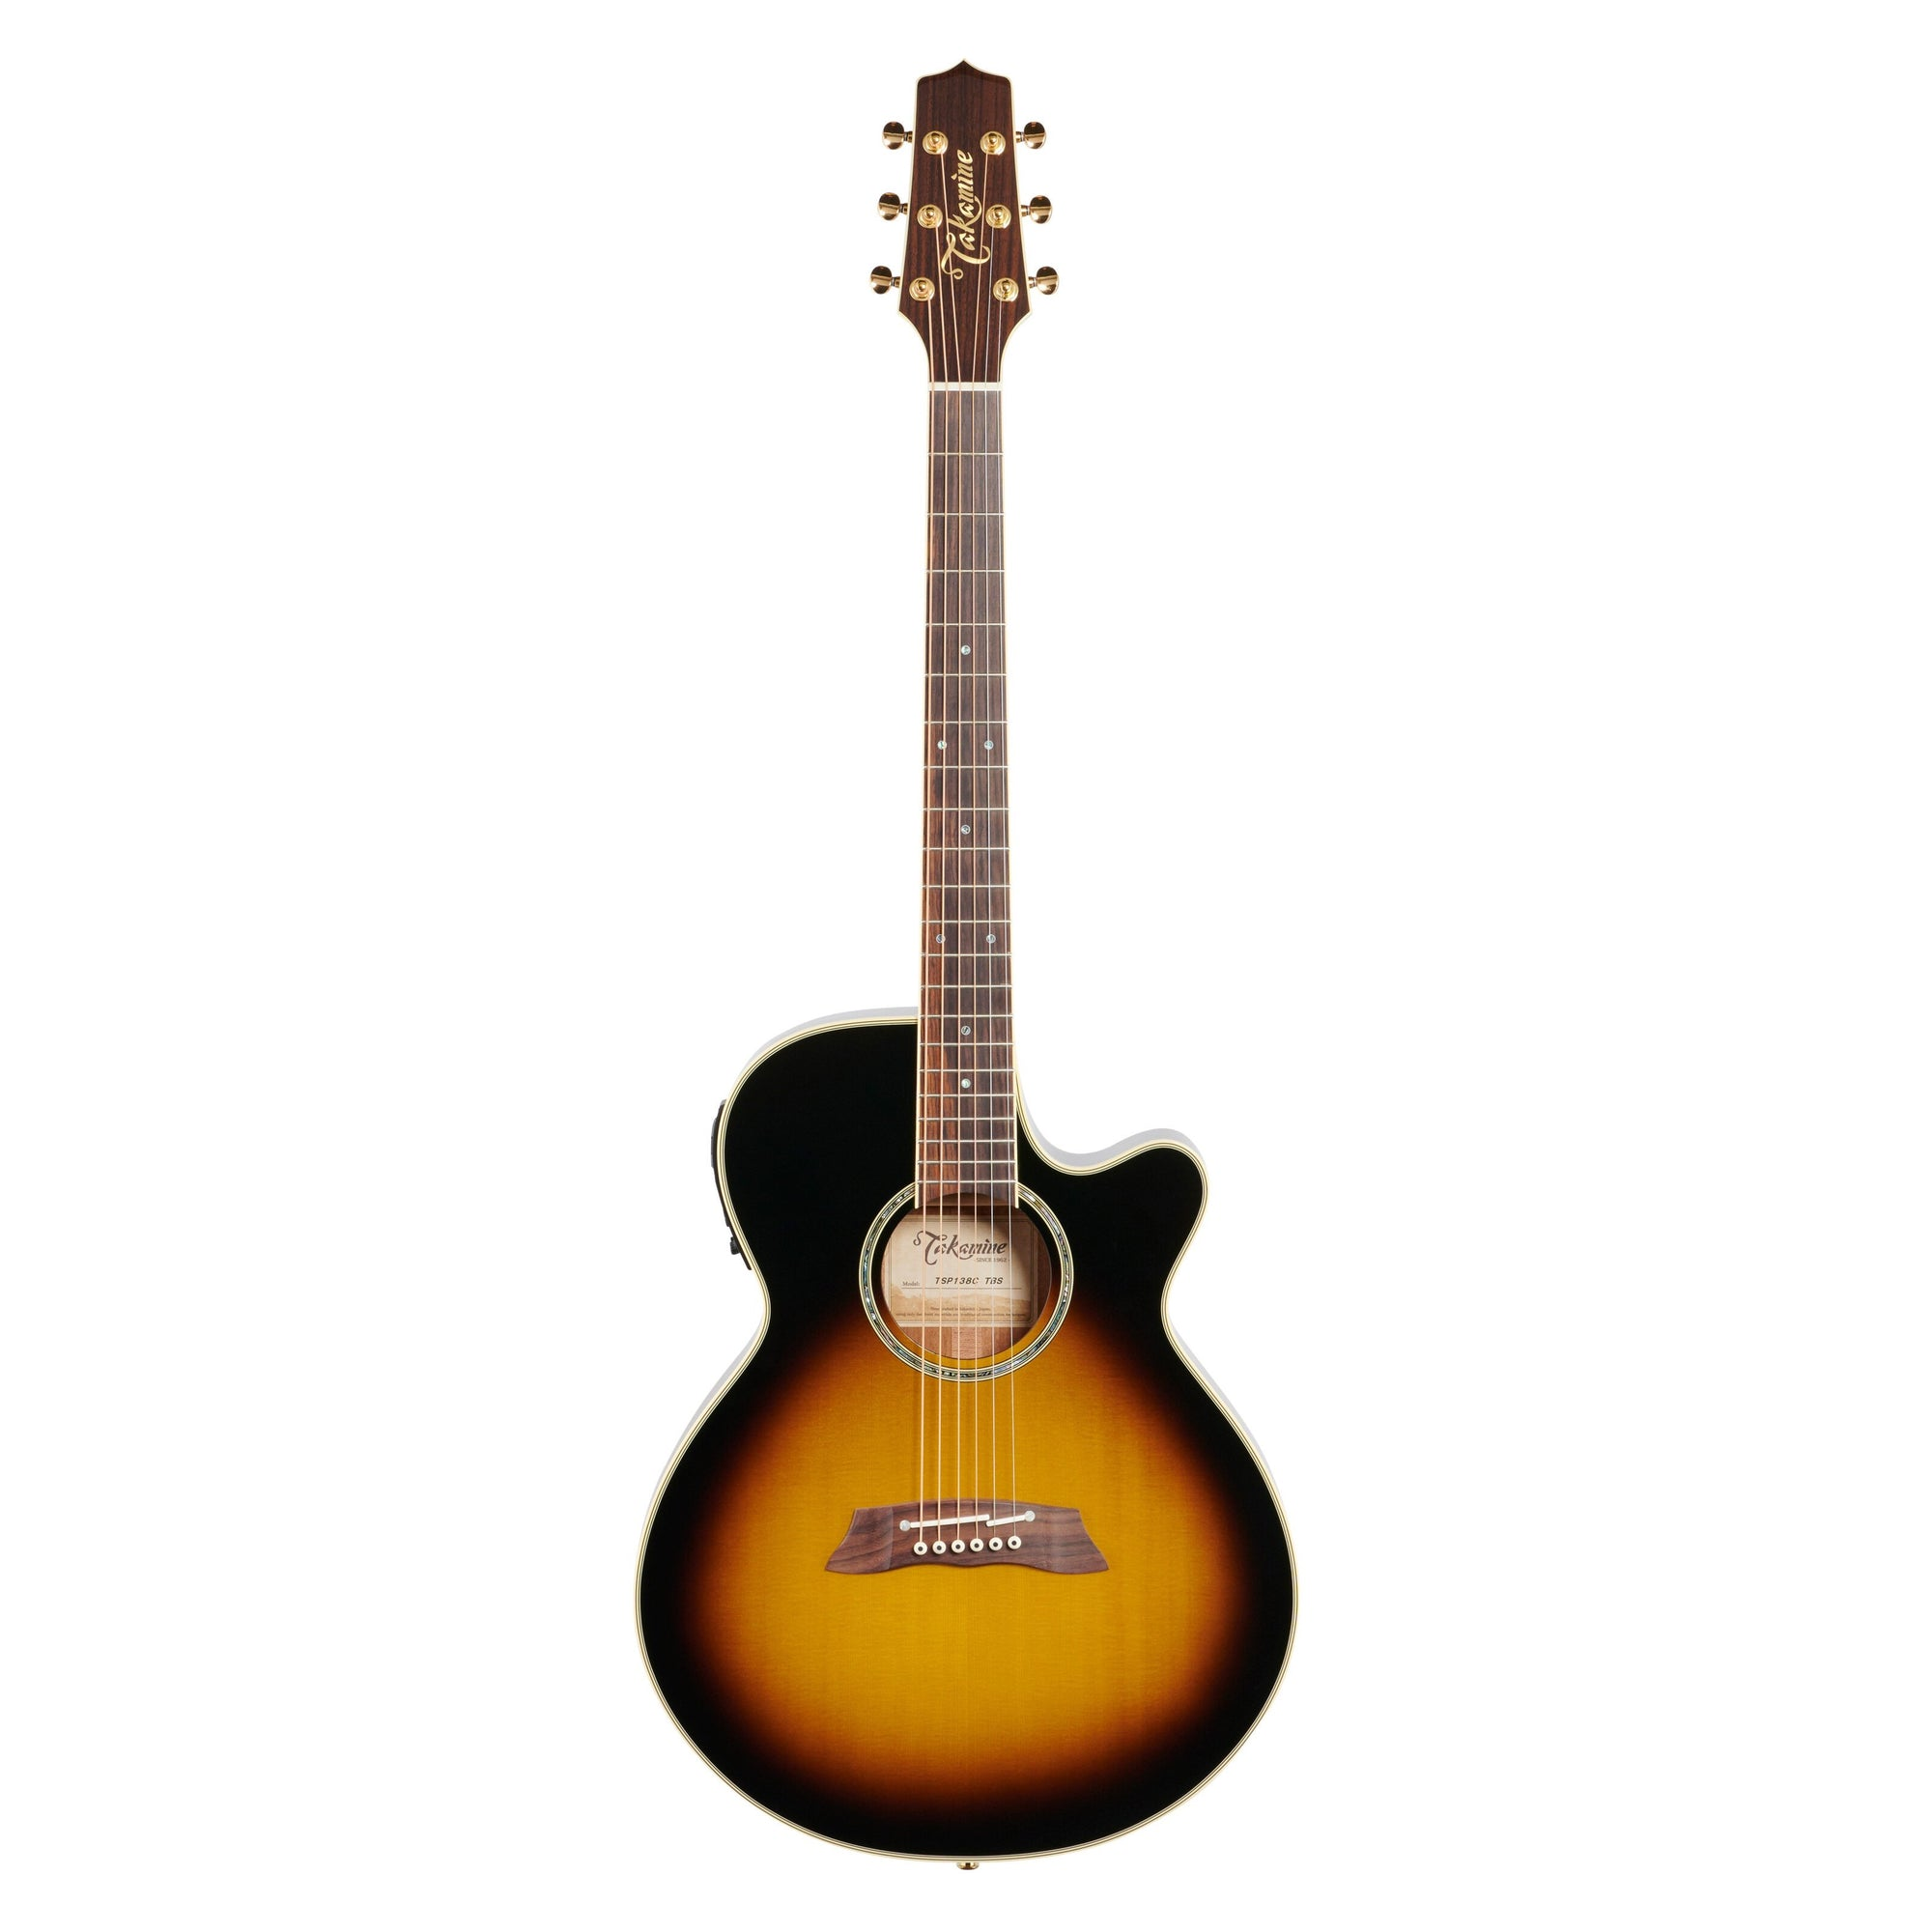 Takamine TSP138C Thinline Acoustic-Electric Guitar (with Gig Bag), Tobacco Sunburst